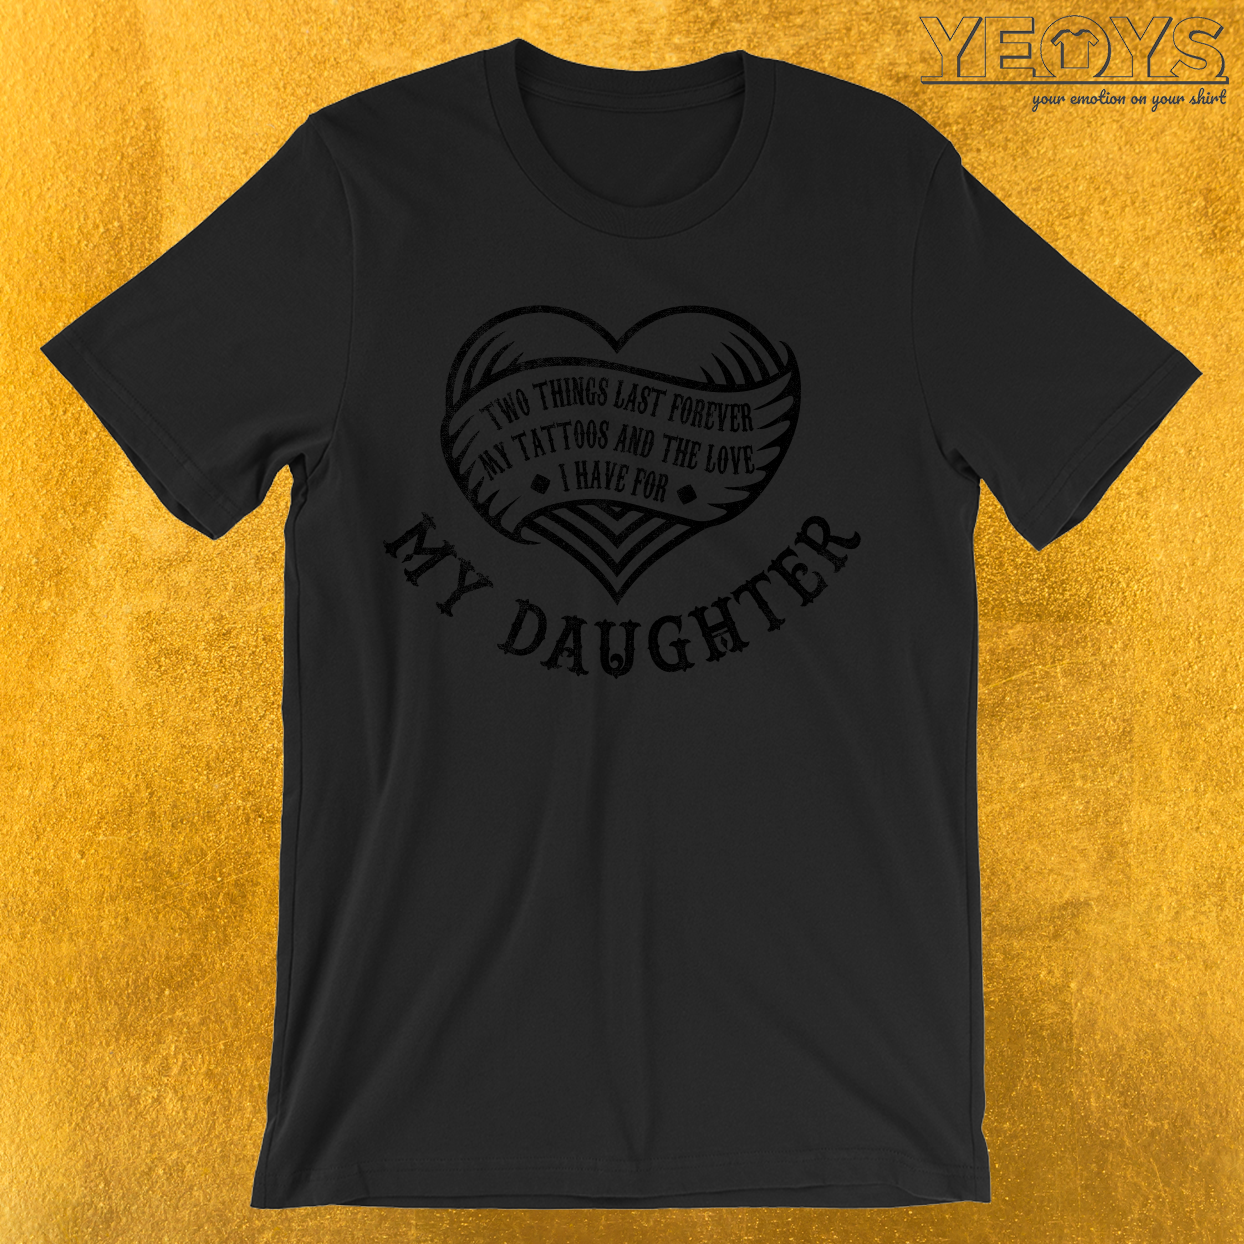 Tattoos And Love My Daughter T-Shirt